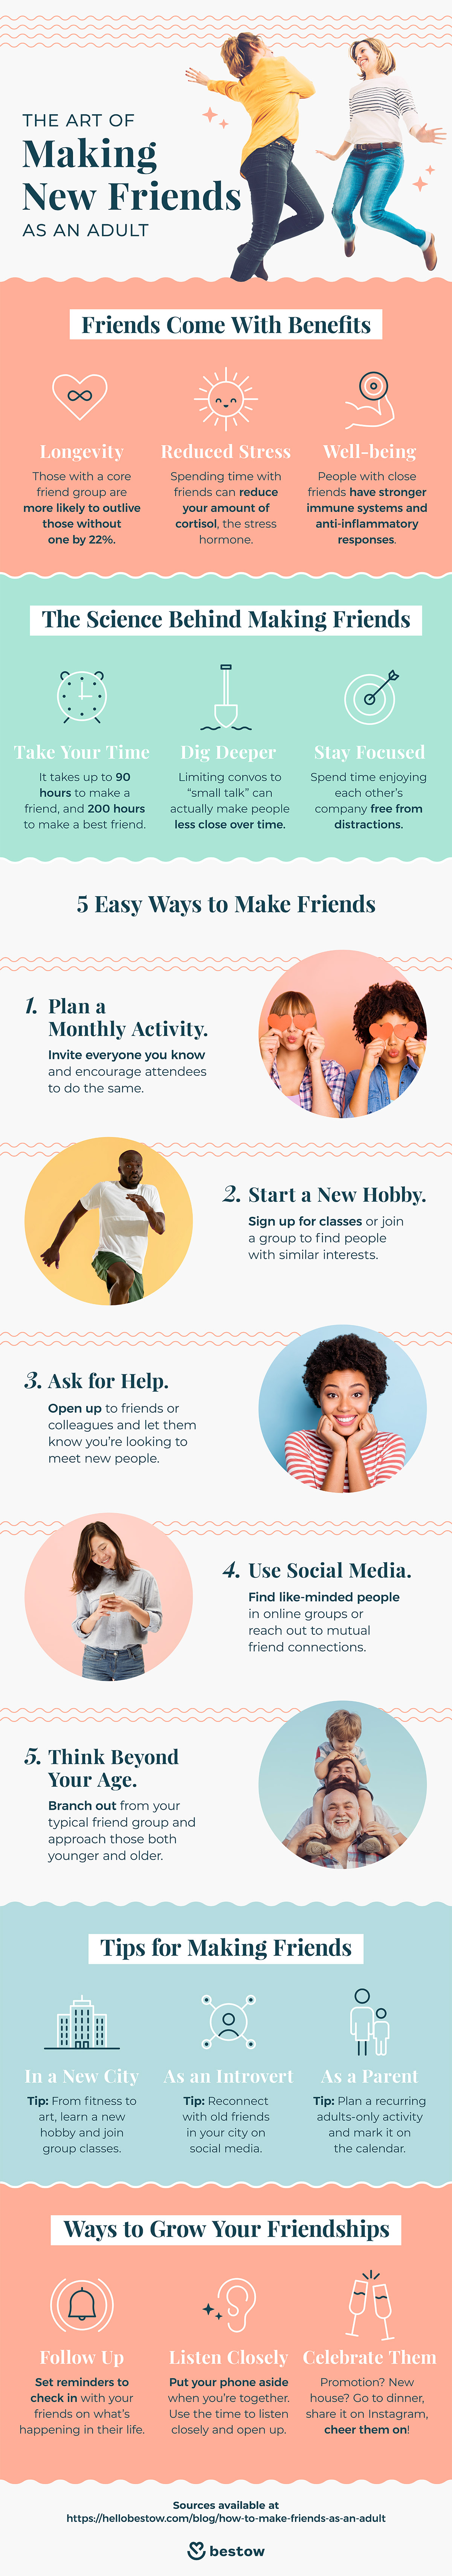 how to make friends as an adult infographic bestow